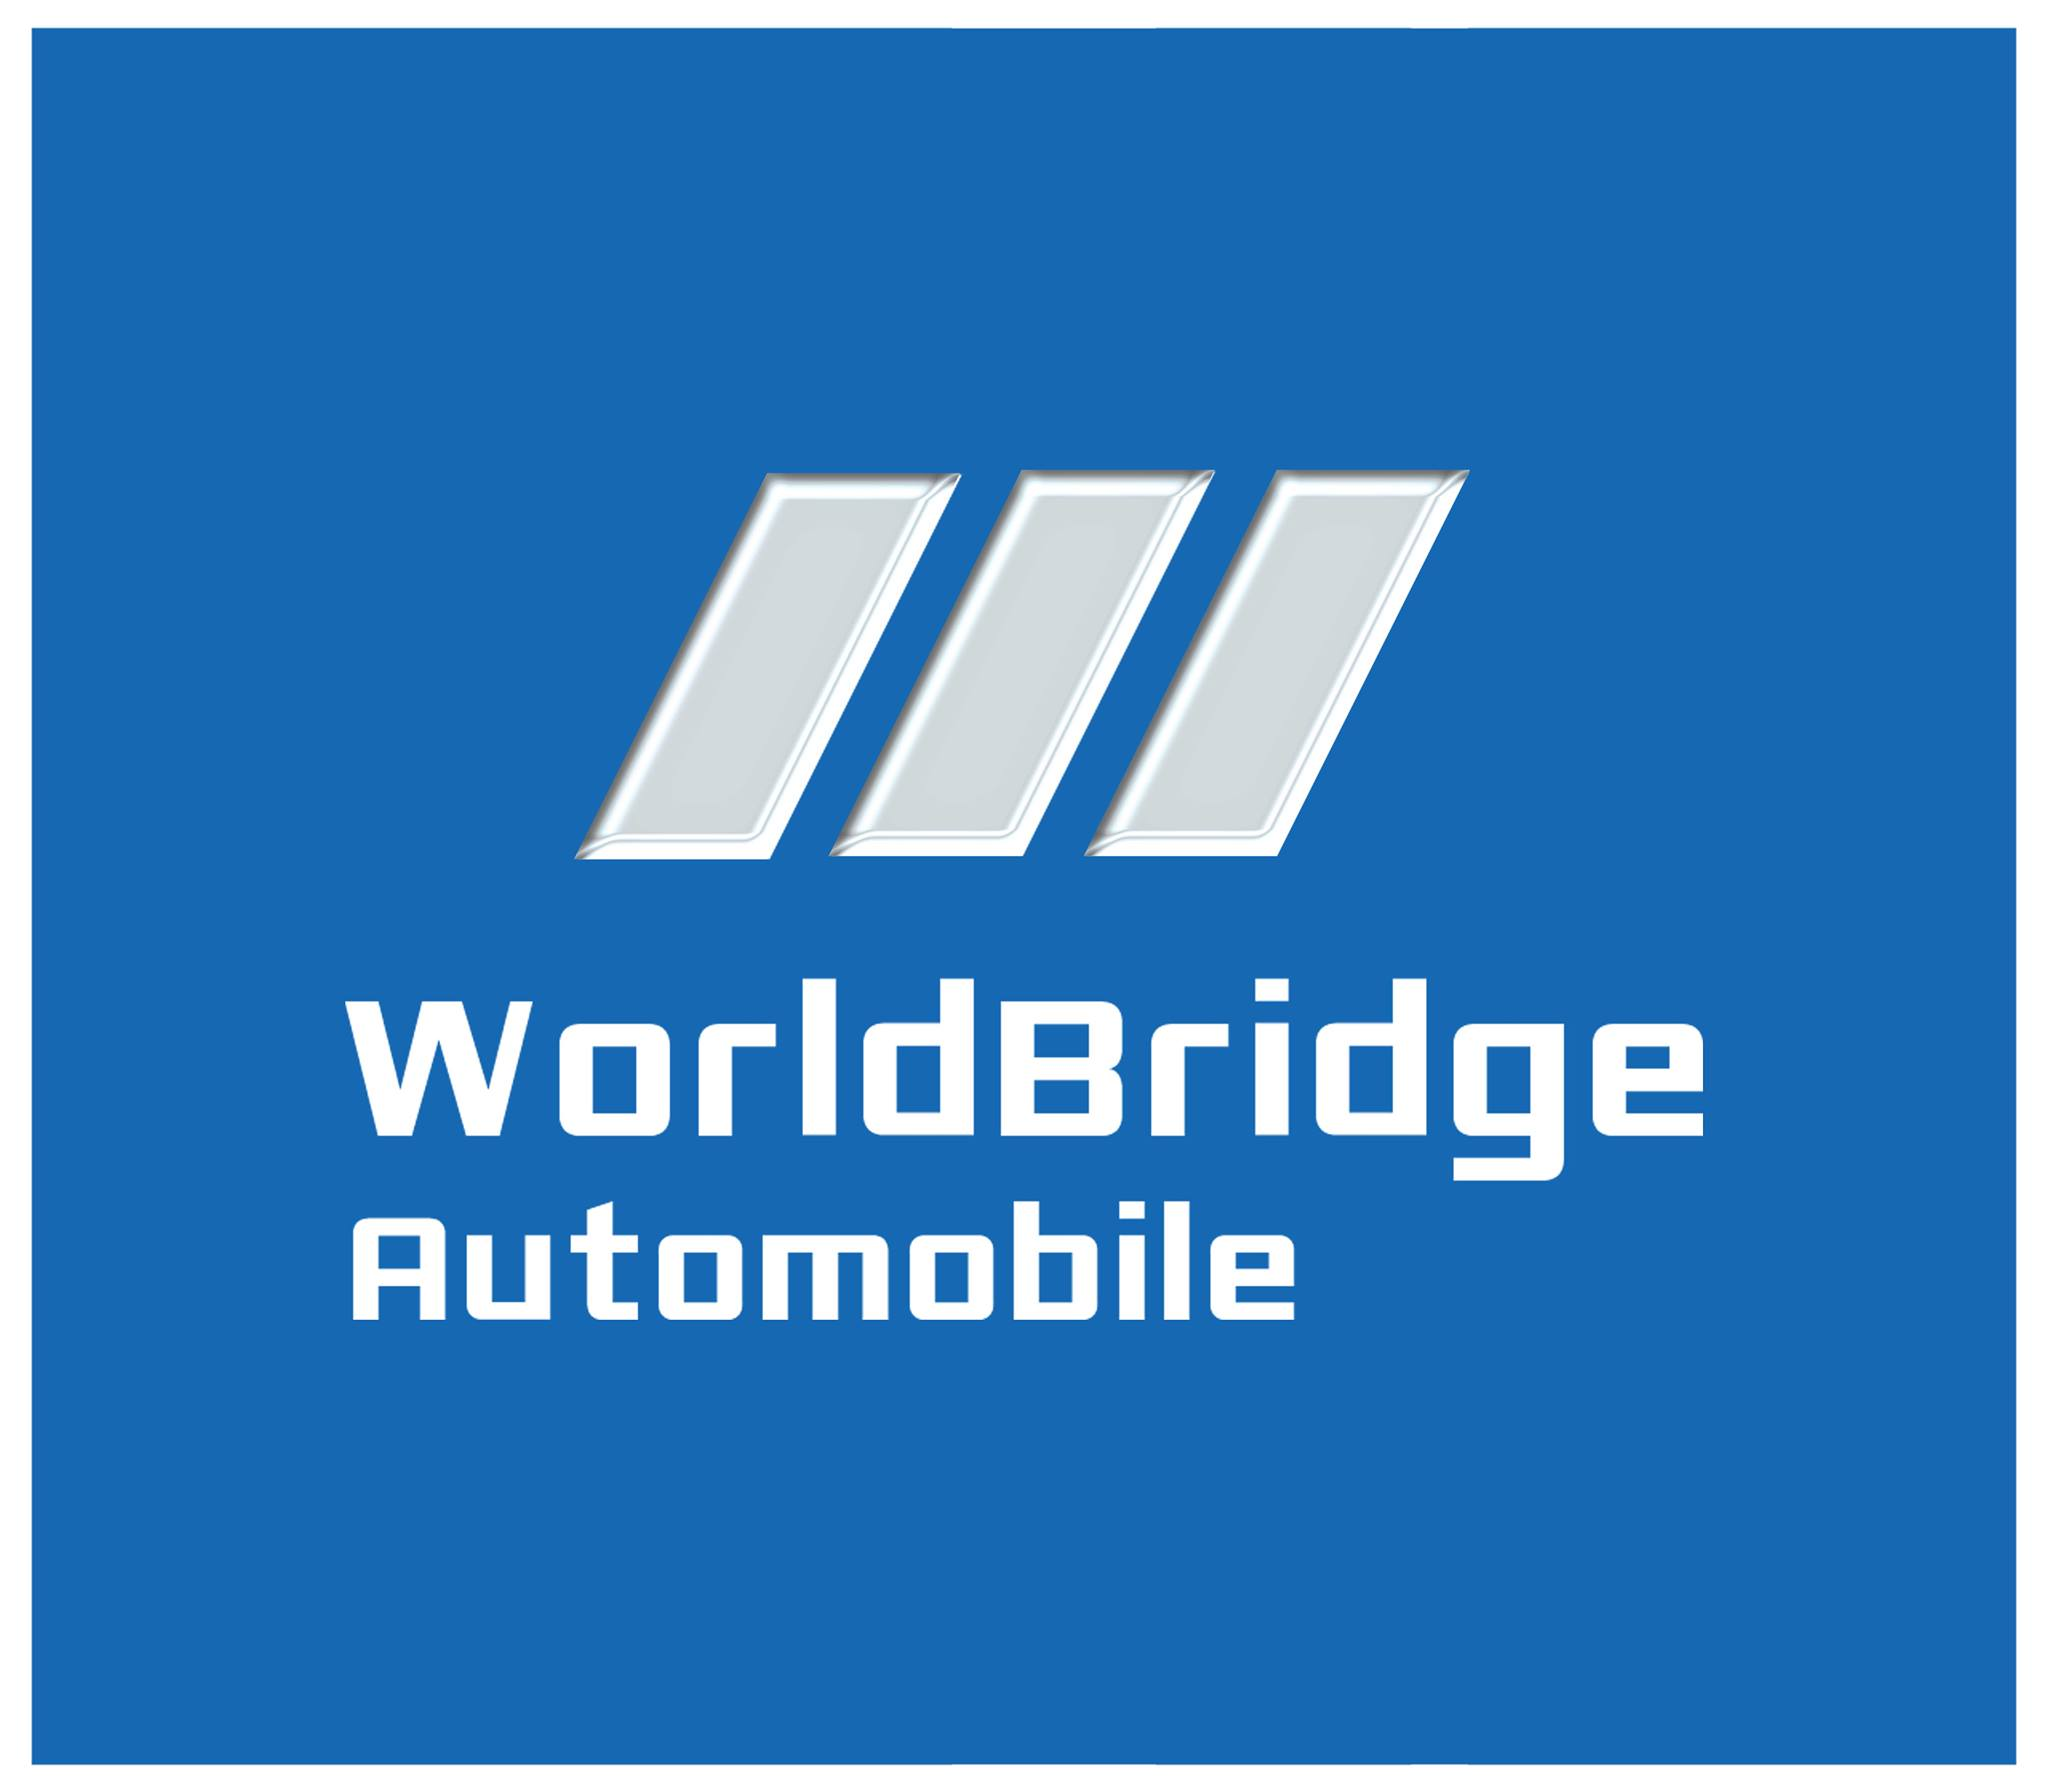 Worldbridge Automobile Co., Ltd.